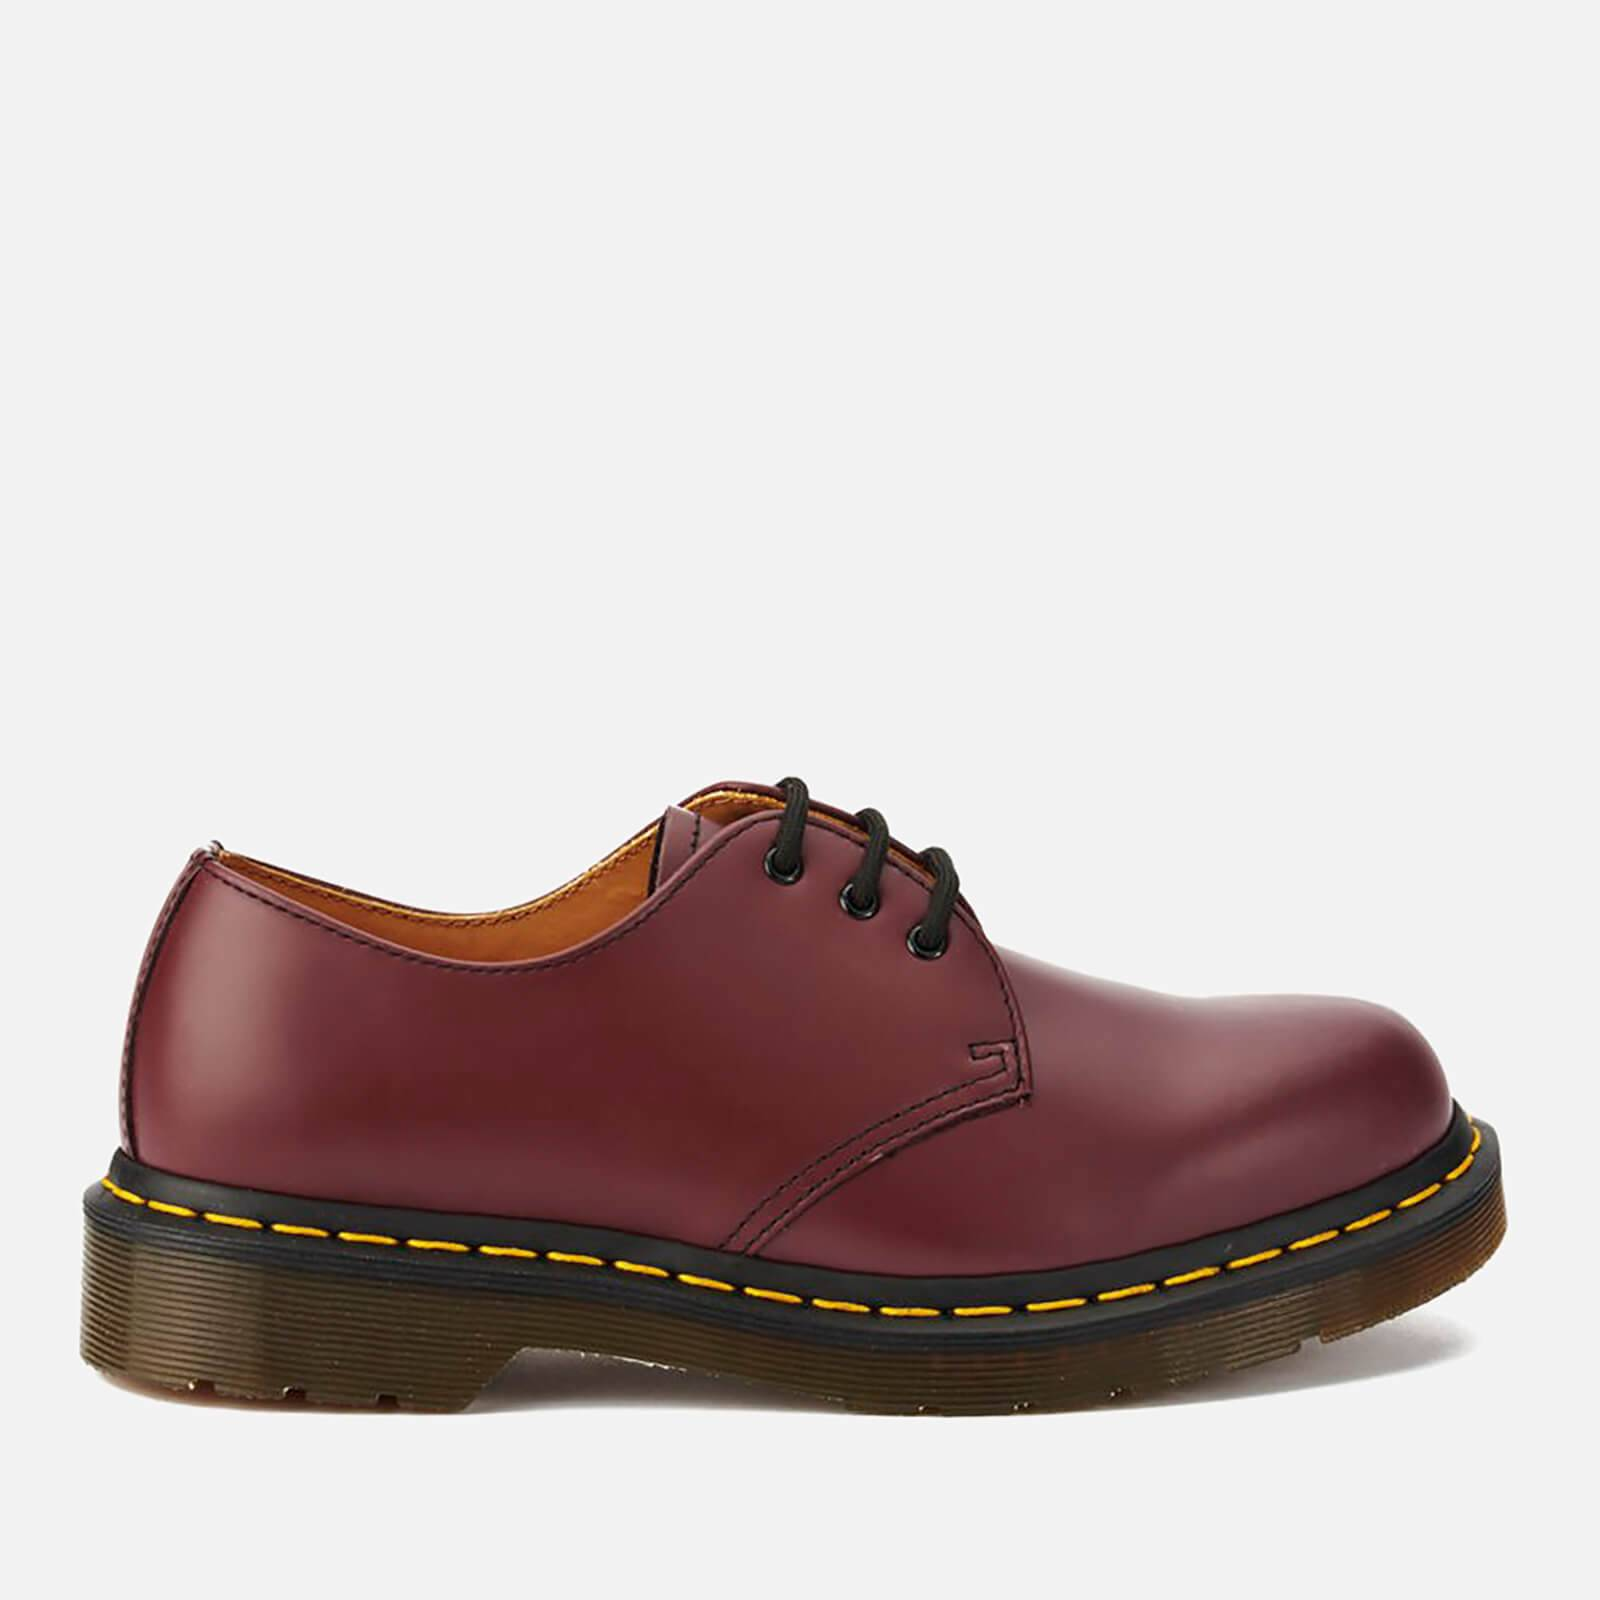 Dr. Martens 1461 Smooth Leather 3-Eye Shoes - Cherry Red - UK 7